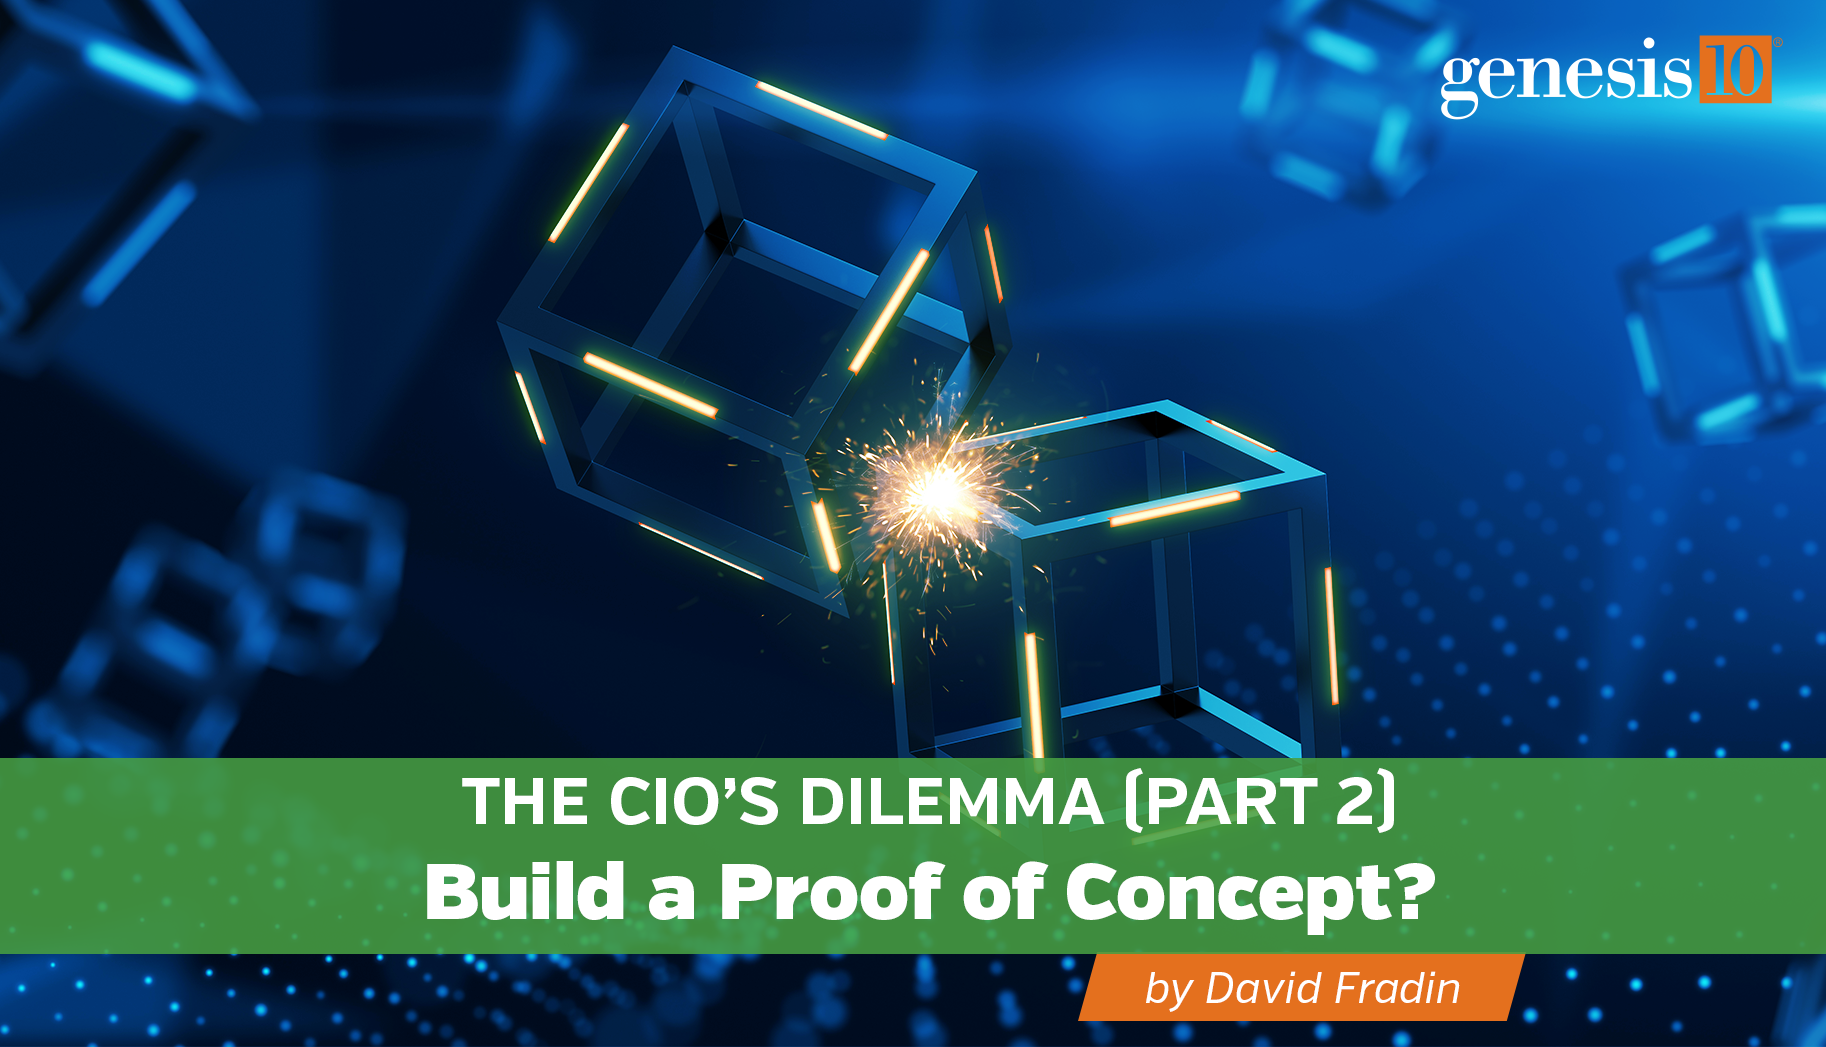 The CIO Dilemma<br>Part 2